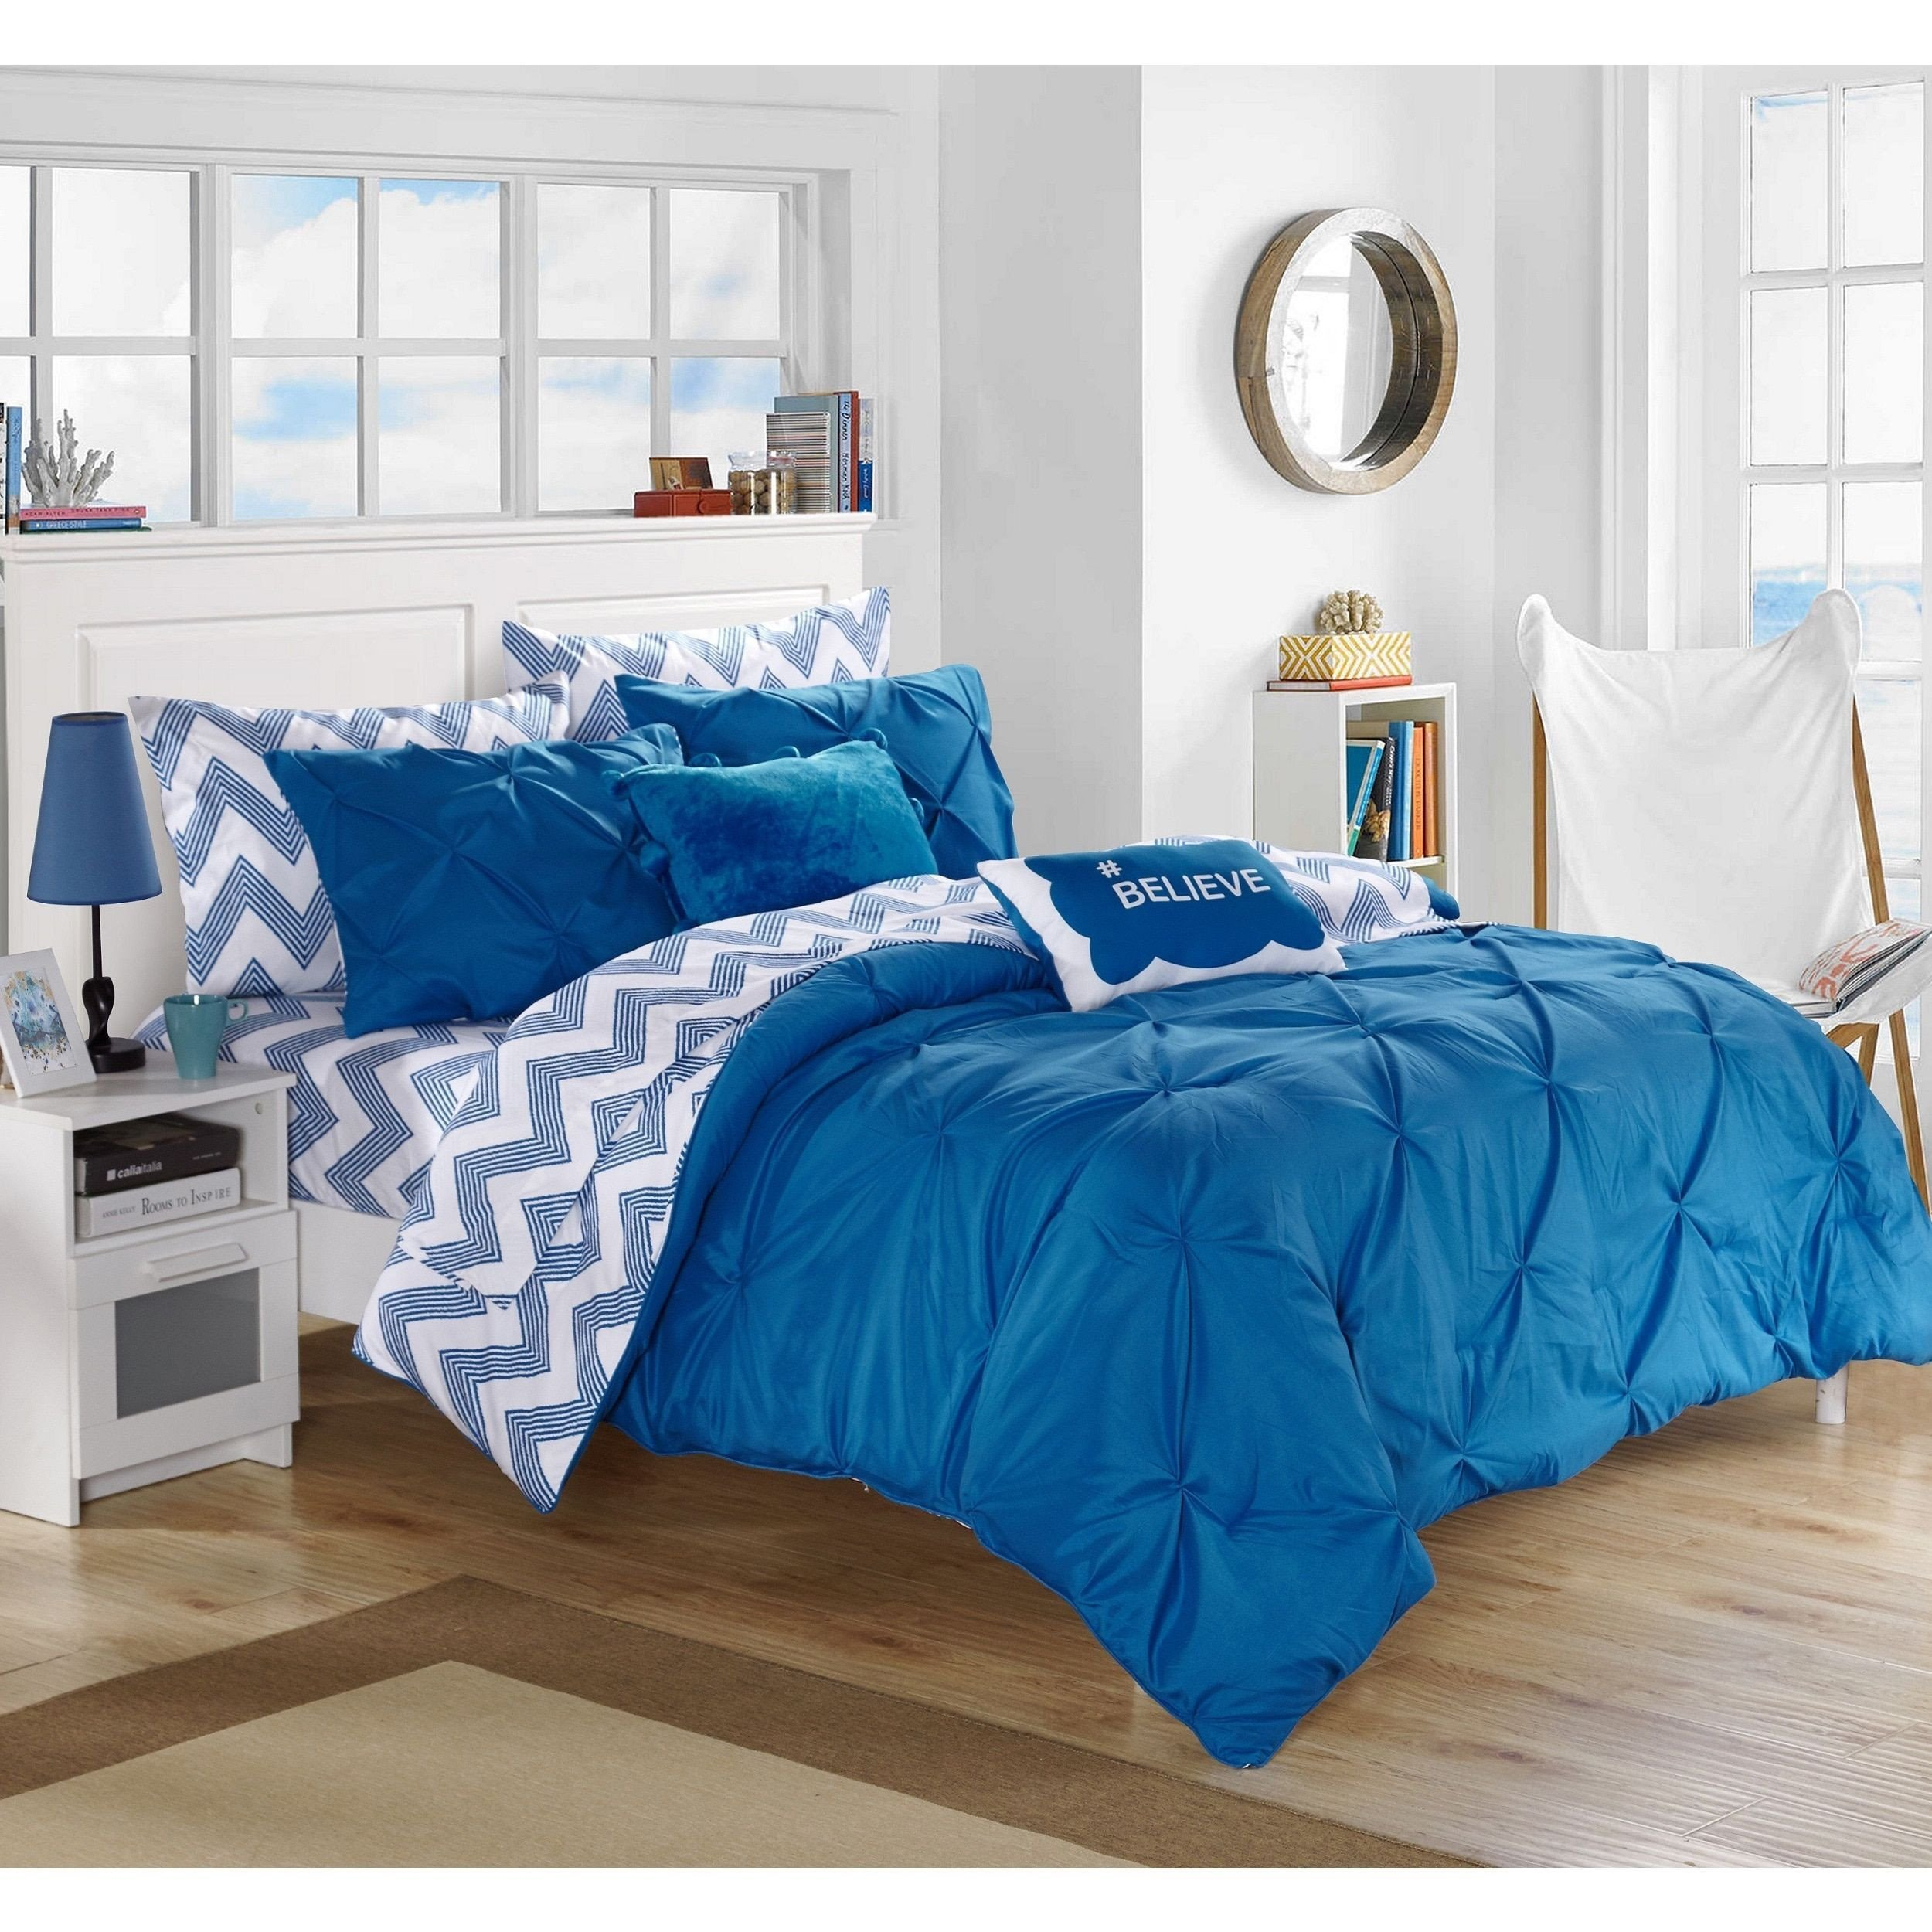 Twin Xl Bedroom Set New Chic Home Foxville Blue 9 Piece Bed In A Bag with Sheet Set